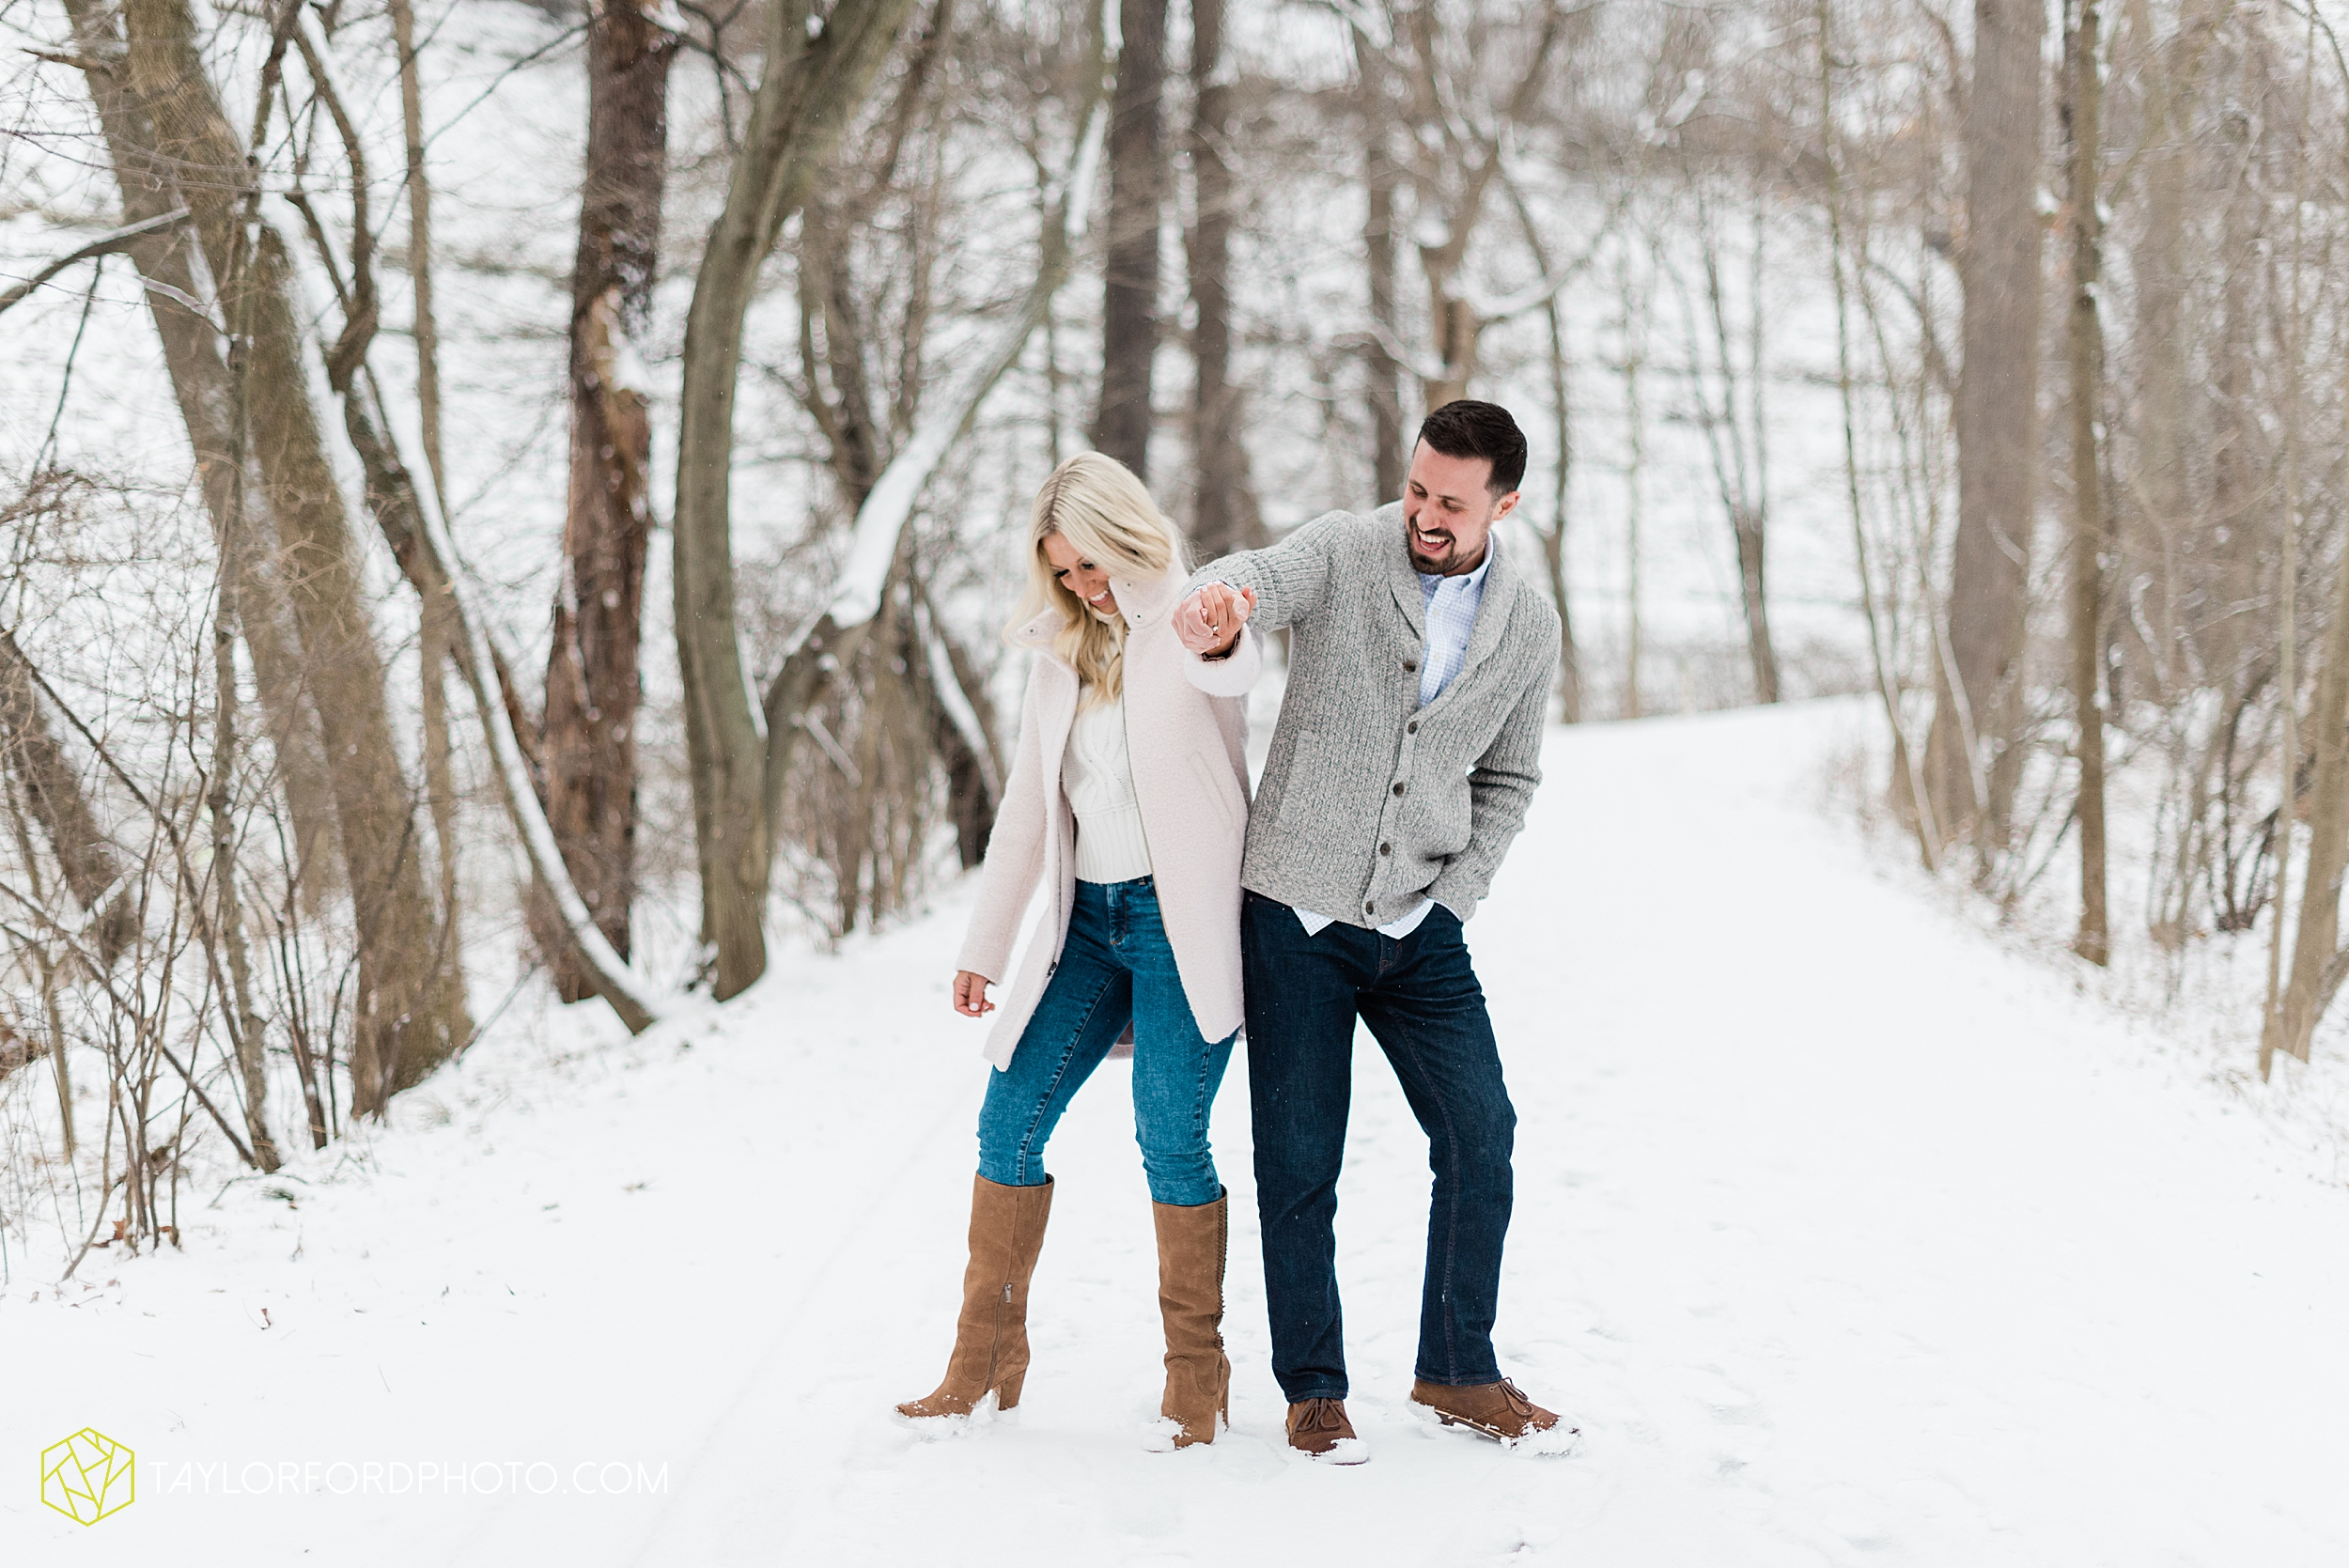 brittany-phil-downtown-cleveland-viaduct-the-flats-east-bank-rocky-river-reservation-engagement-photography-taylor-ford-hirschy-photographer_2440.jpg